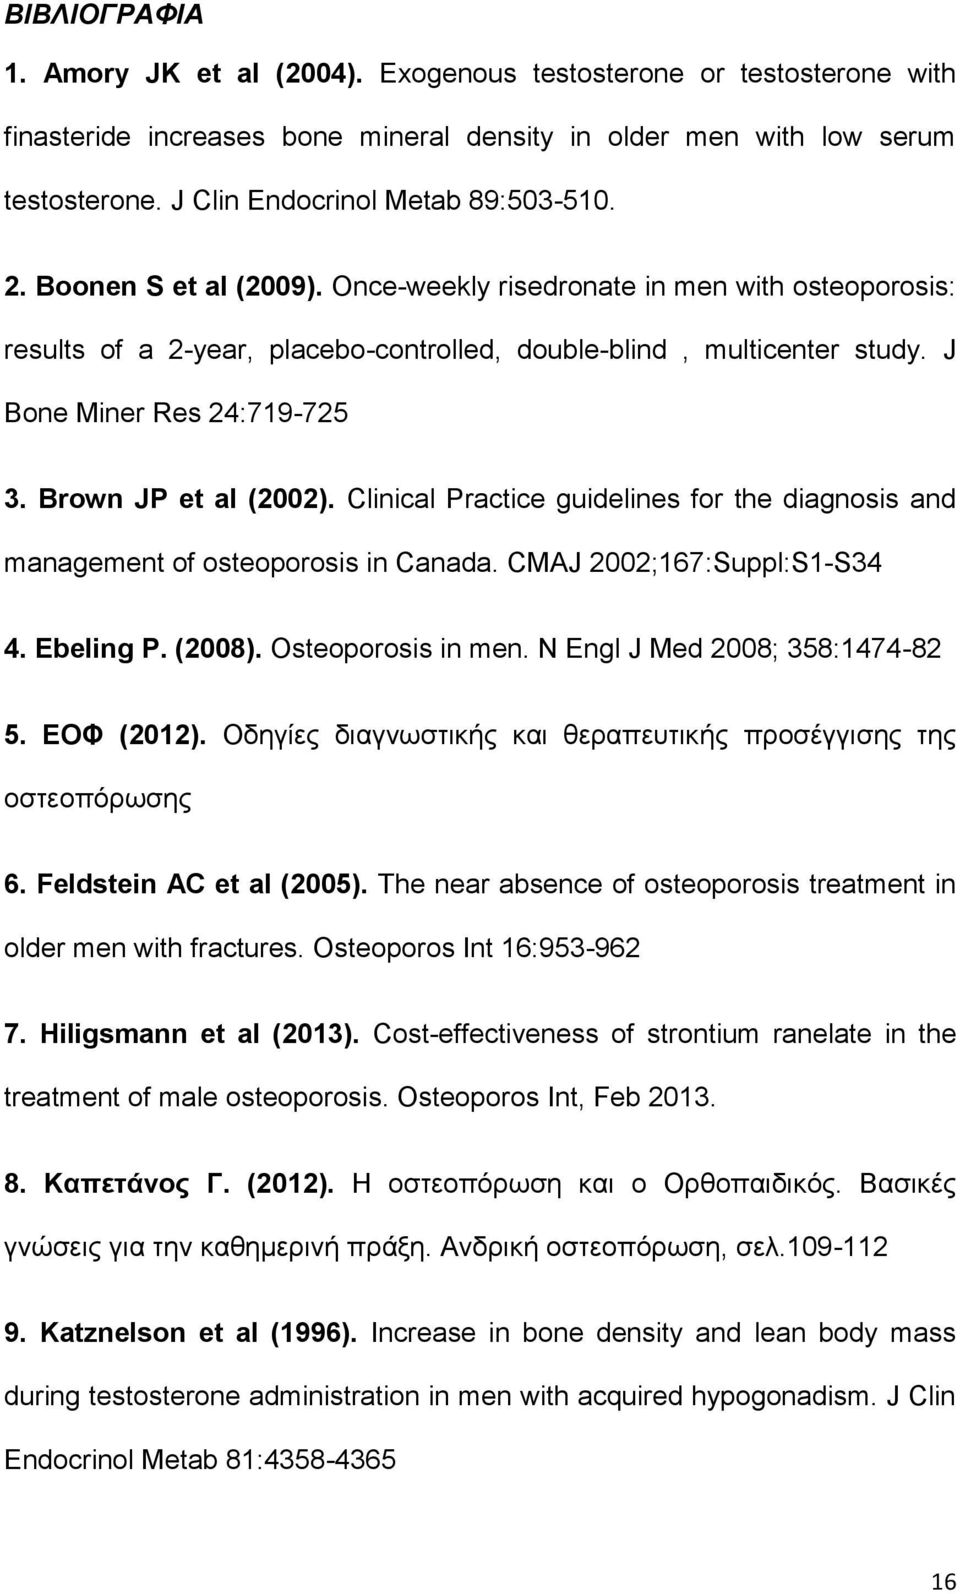 J Bone Miner Res 24:719-725 3. Brown JP et al (2002). Clinical Practice guidelines for the diagnosis and management of osteoporosis in Canada. CMAJ 2002;167:Suppl:S1-S34 4. Ebeling P. (2008).